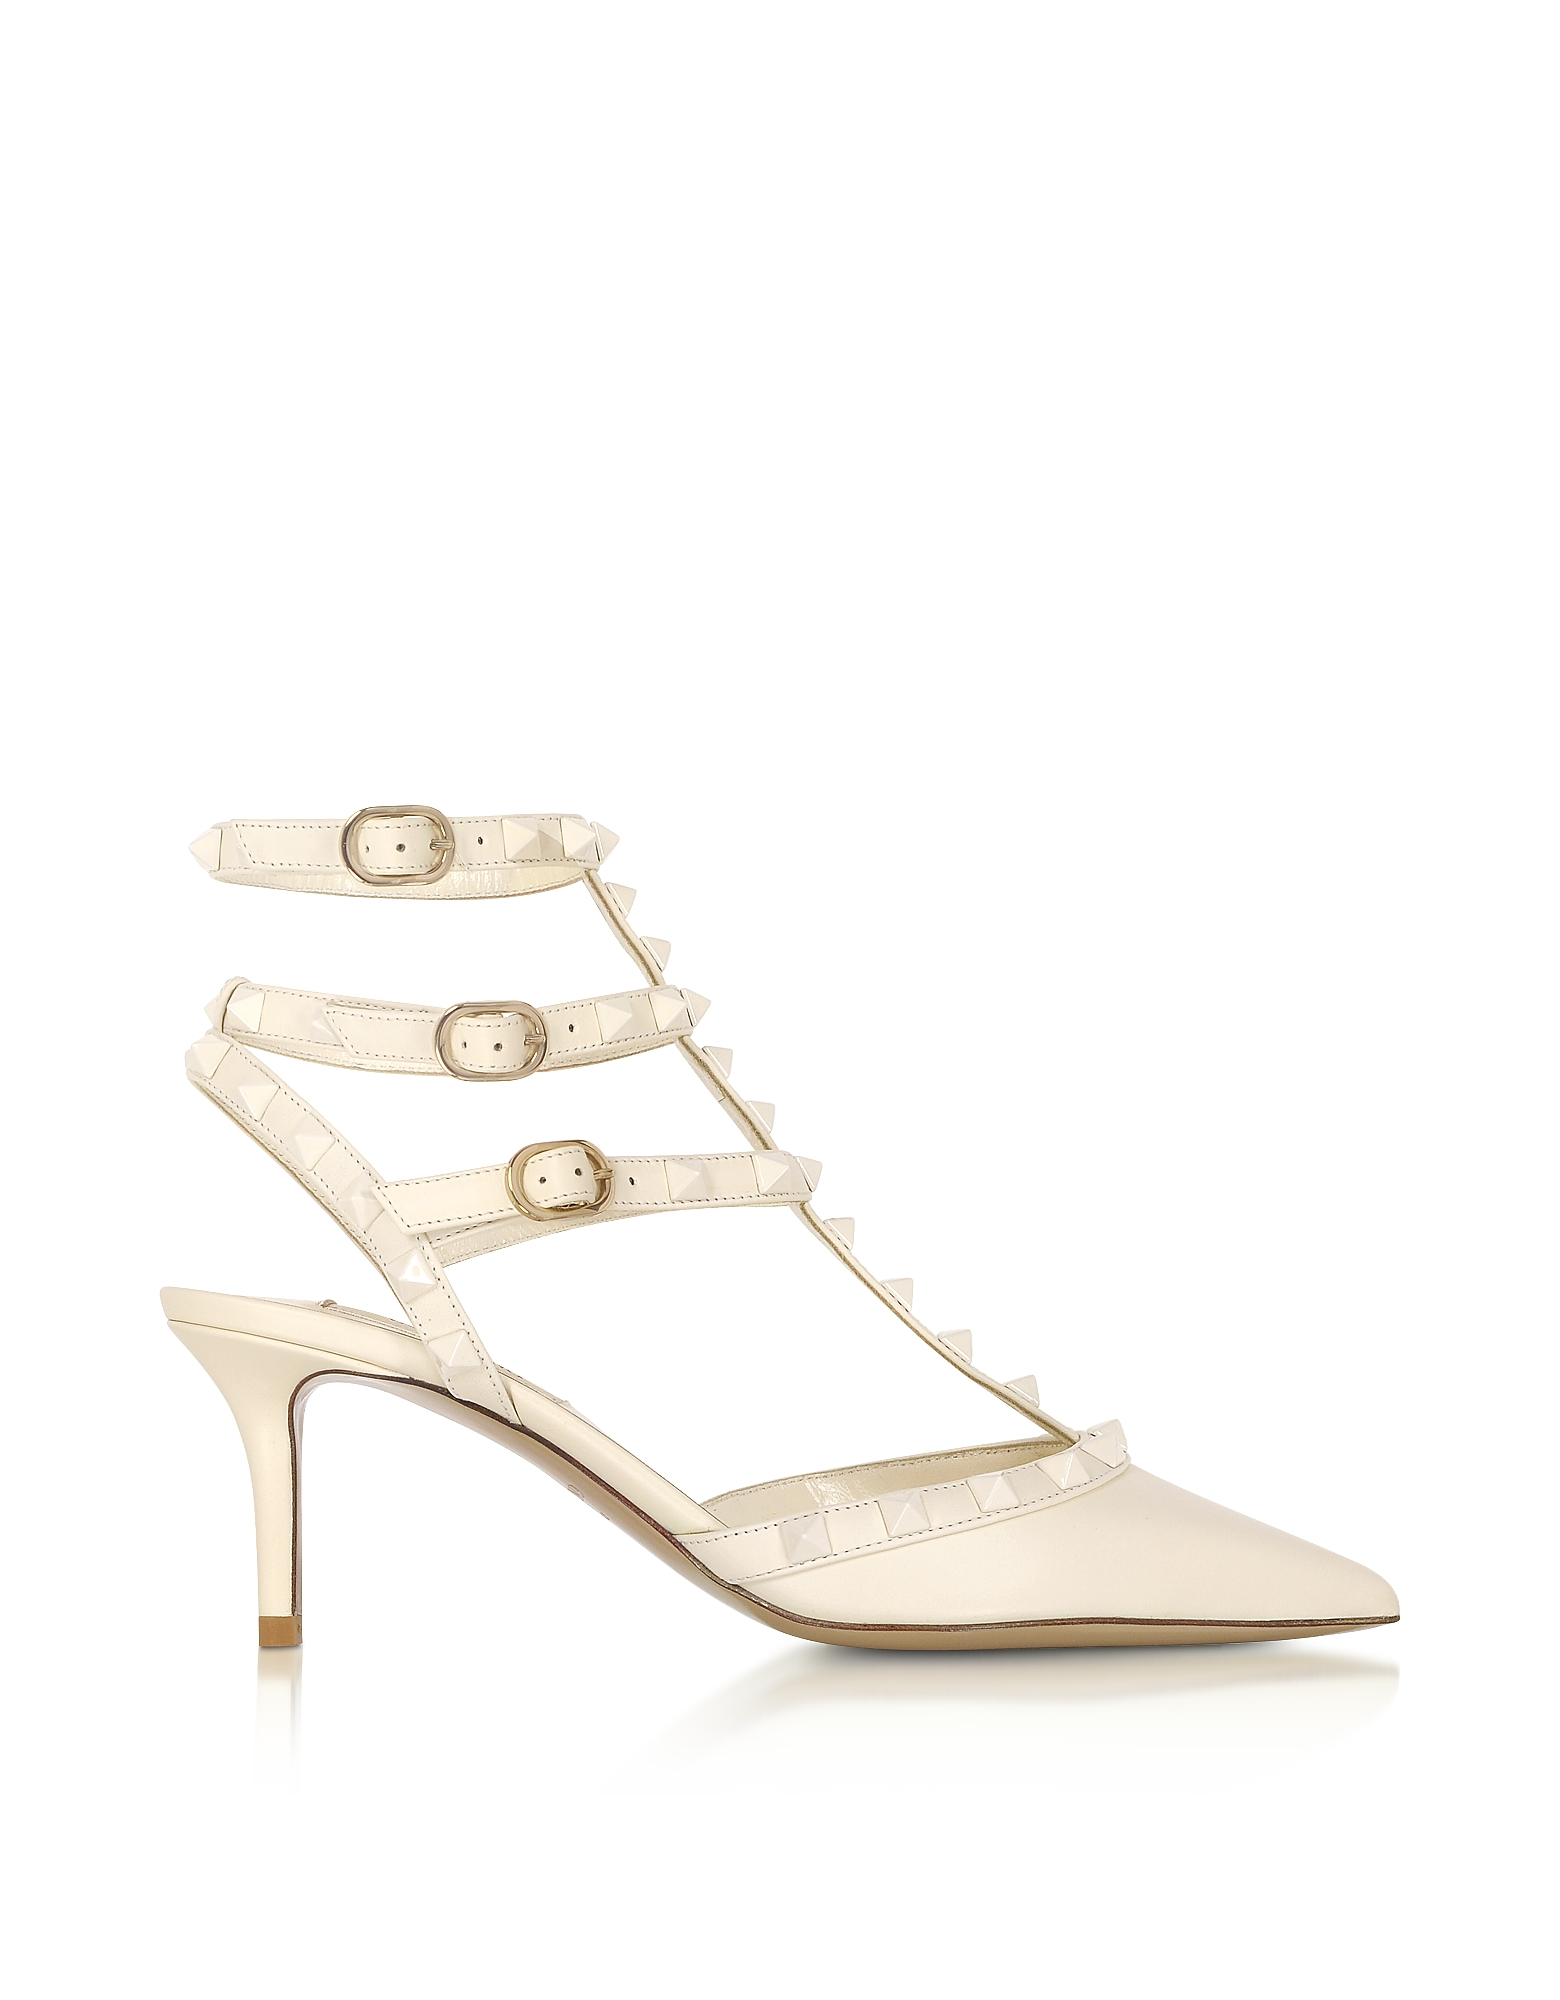 Valentino Shoes, Rockstud Ivory Leather Ankle Strap Pumps